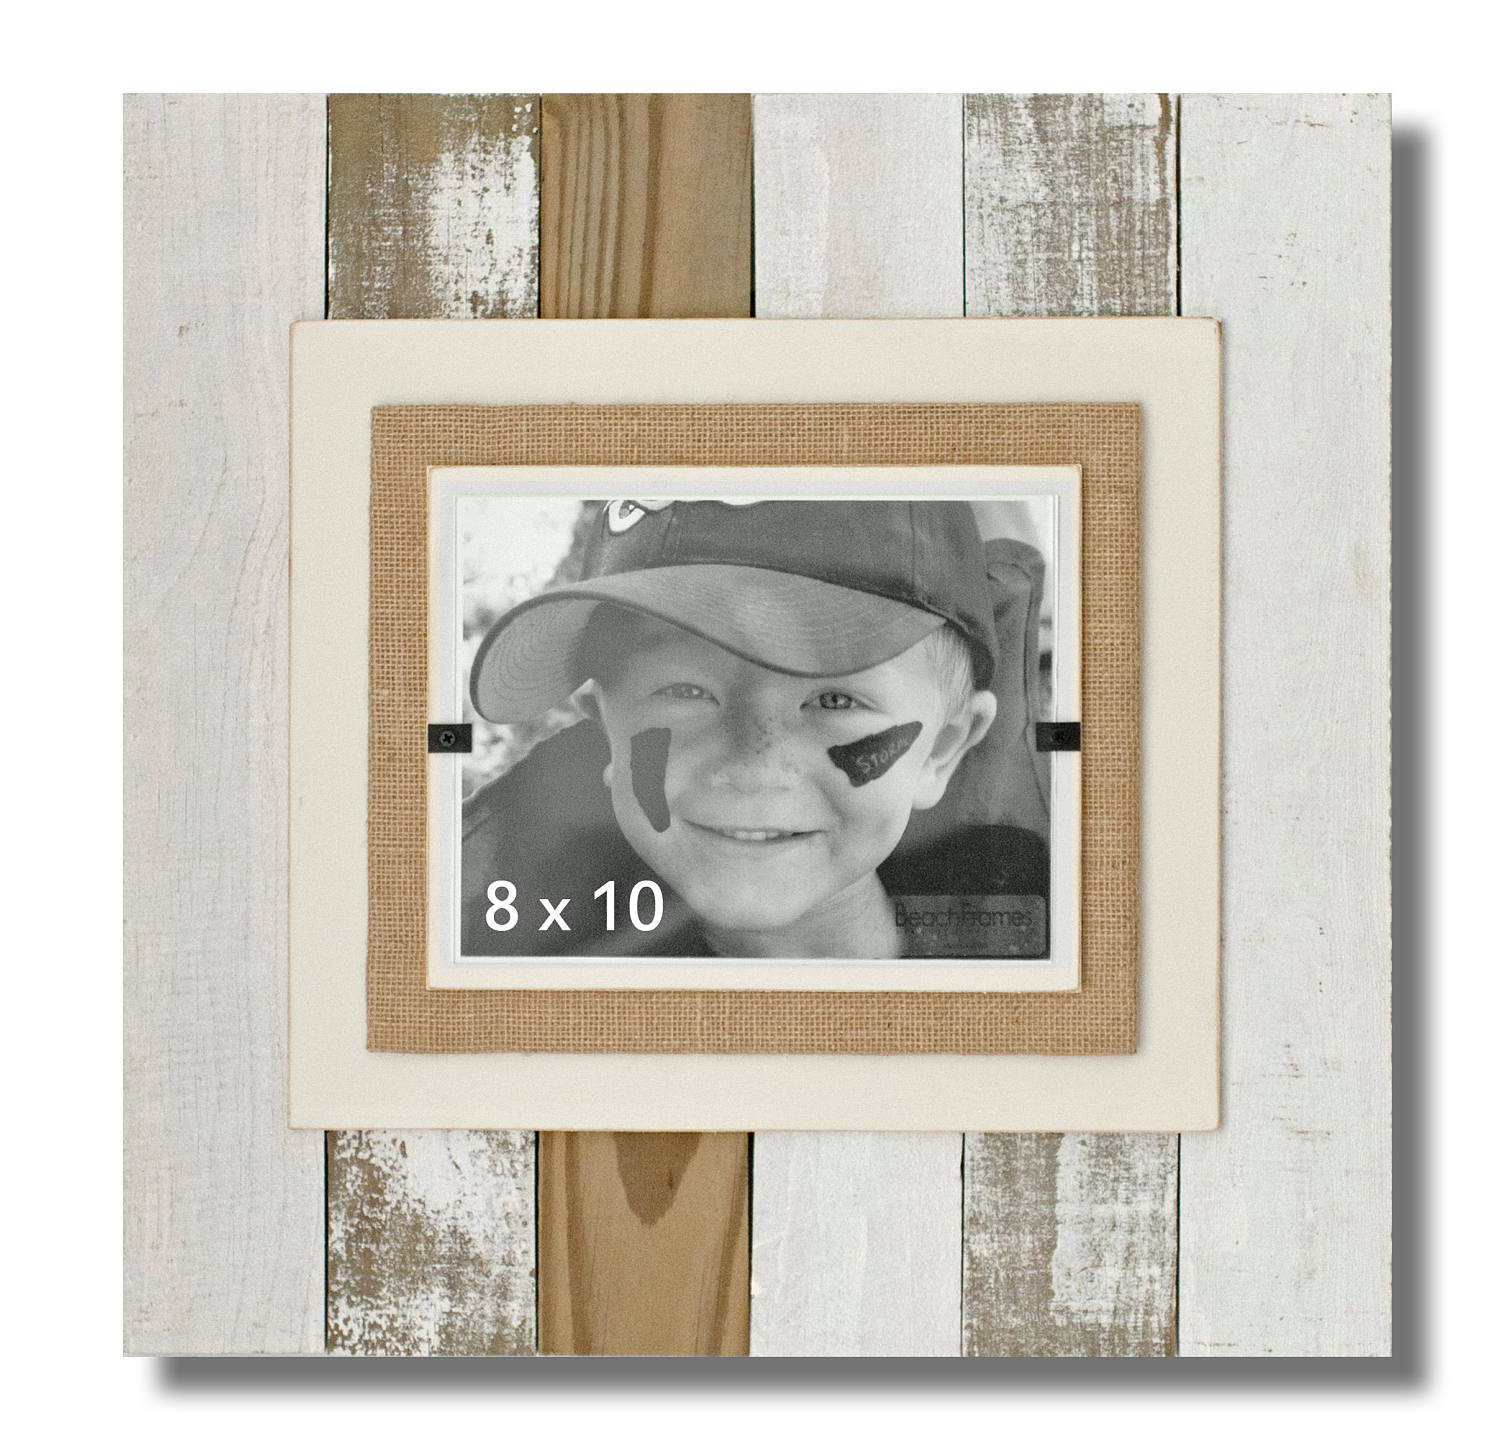 Cape cod style reclaimed wood white washed picture frame with 3900 jeuxipadfo Images